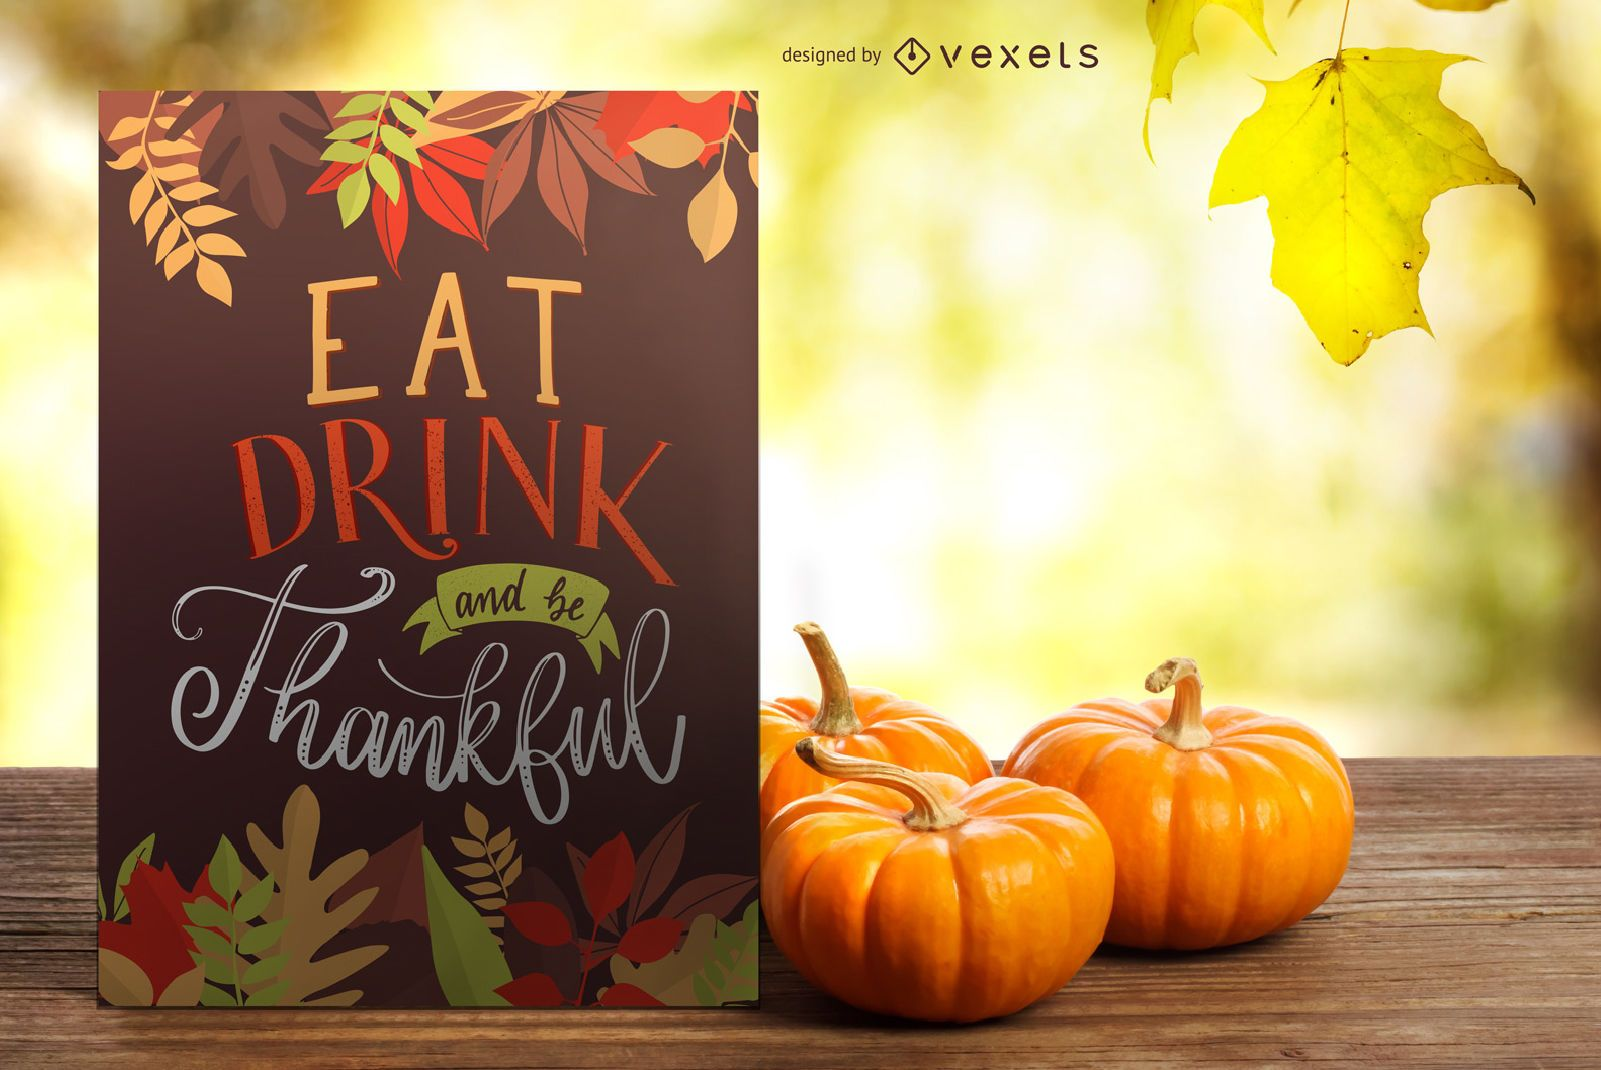 Eat drink be thankful banner